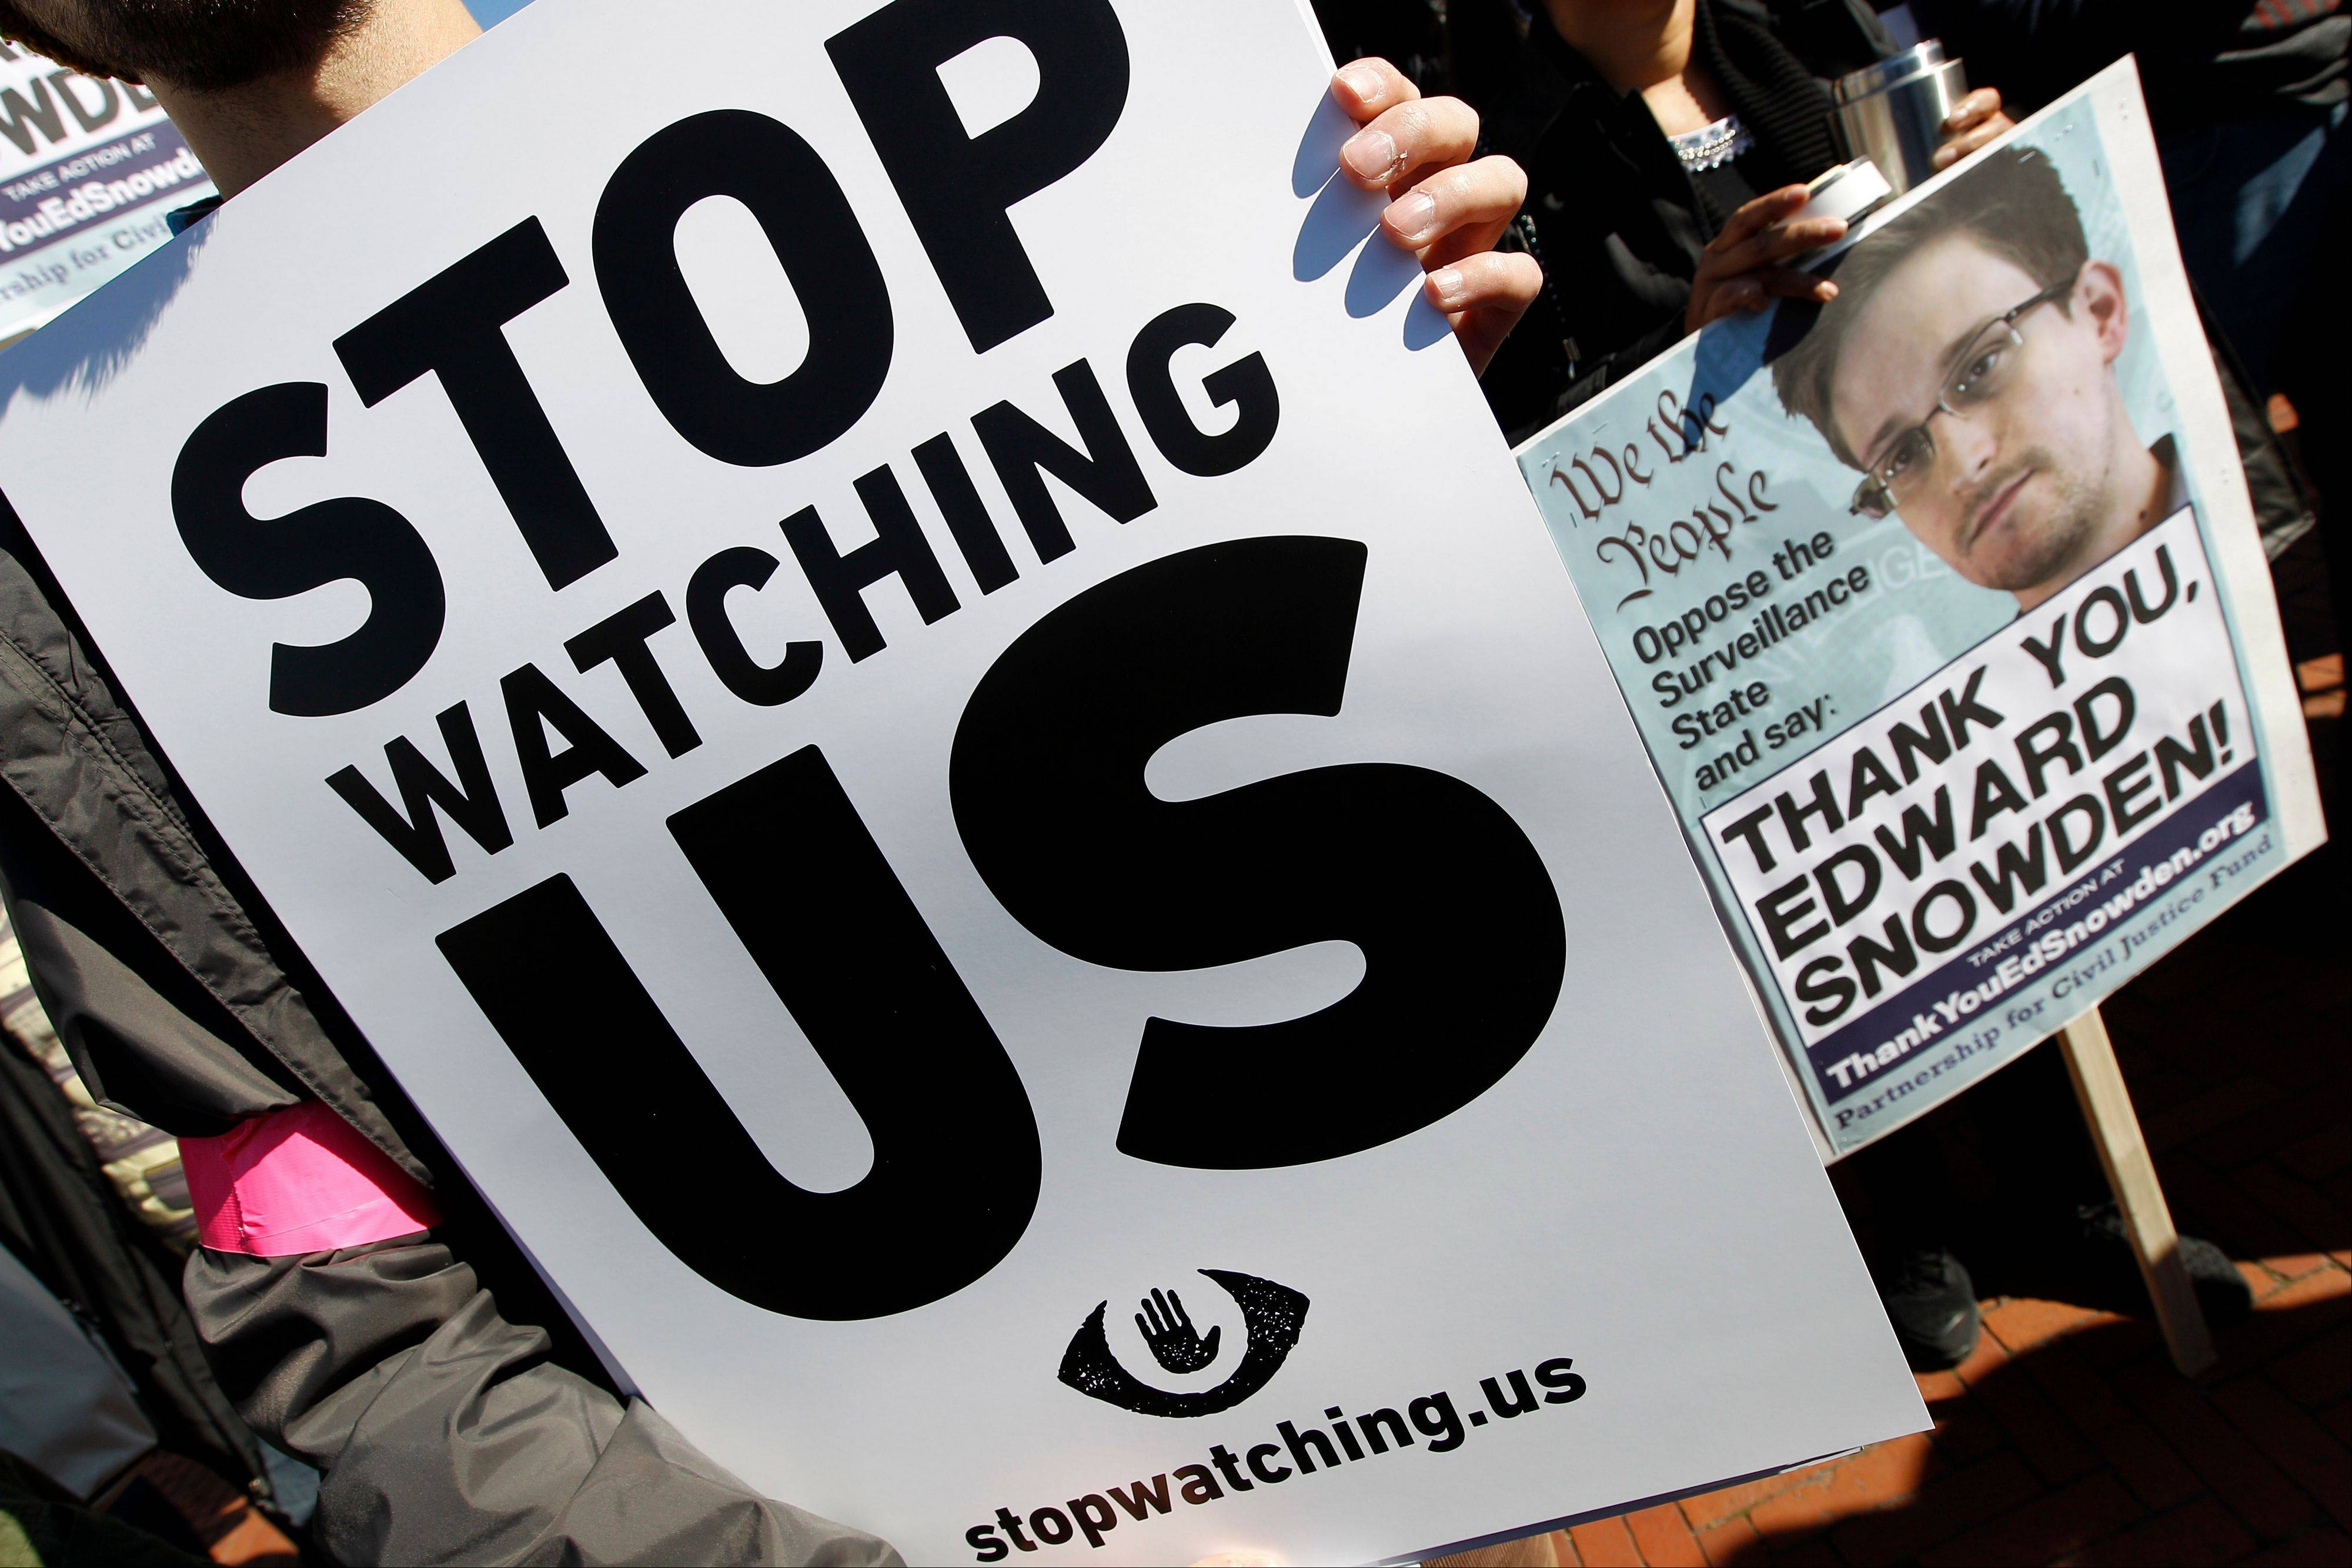 Demonstrators protested outside of the U.S. Capitol in Washington during a rally in October to demand that Congress investigate the National Security Agency's mass surveillance programs. (AP Photo)